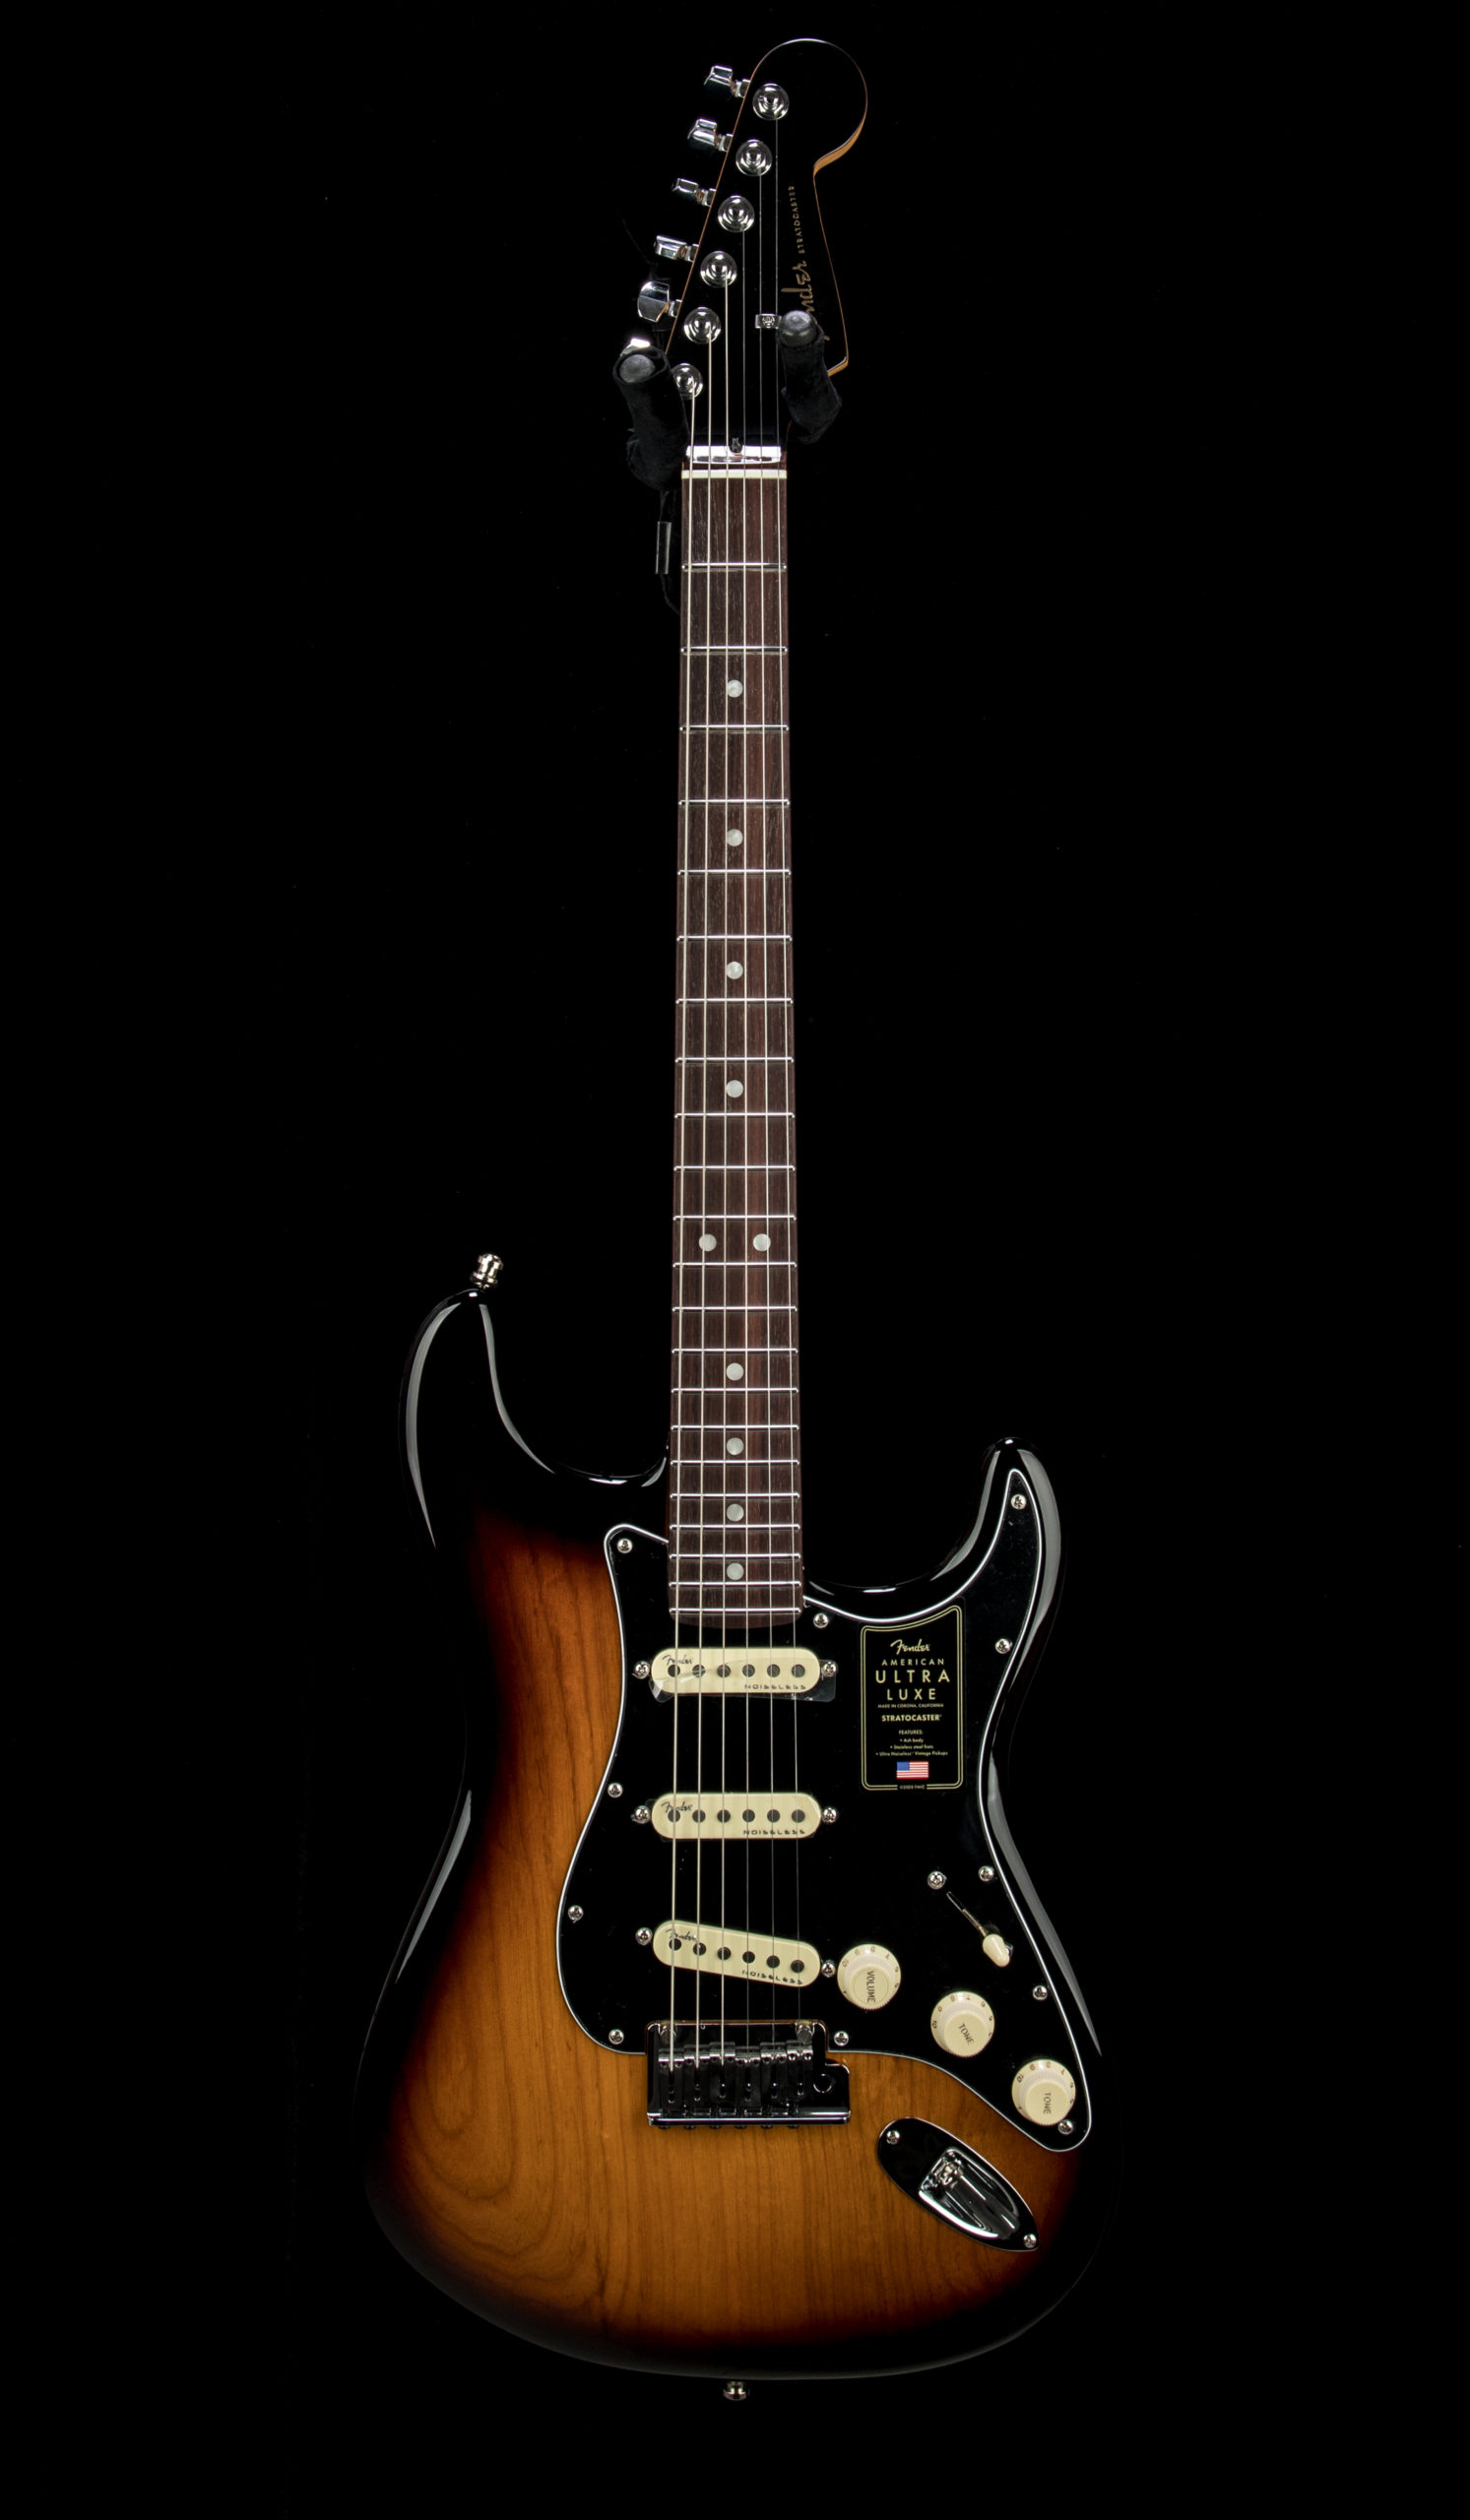 12 Fender Ultra Luxe Strat #US210056905 Front